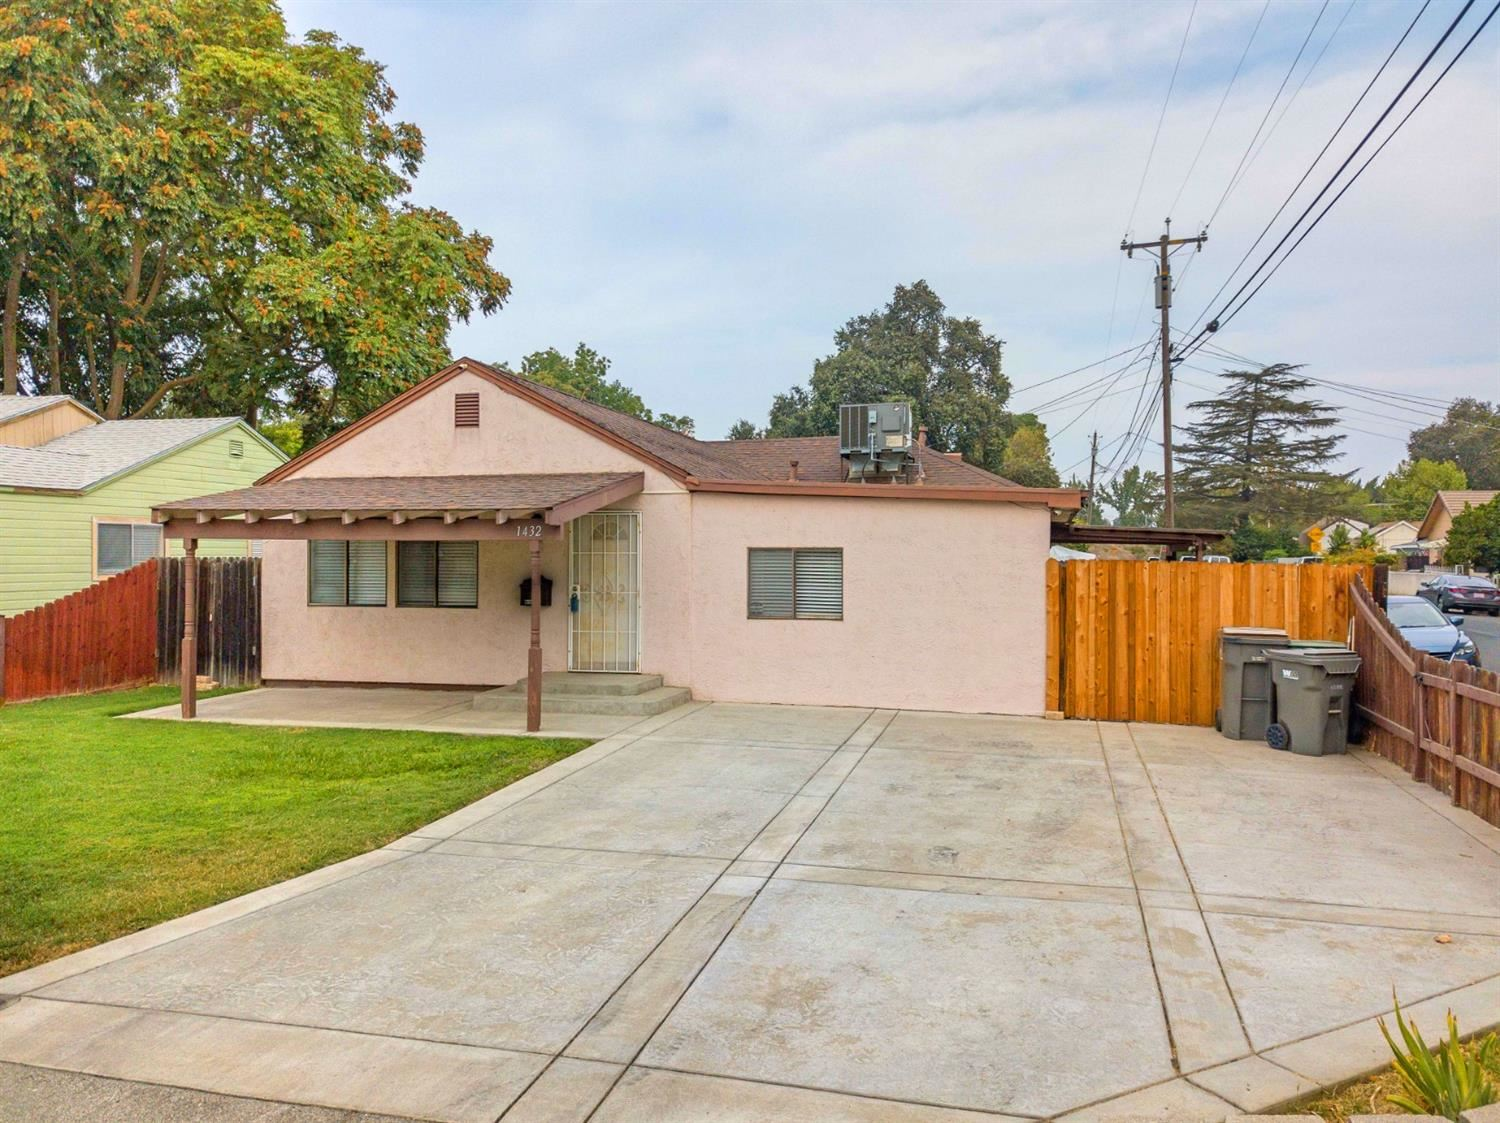 Photo of 1432 Carrie Street, West Sacramento, CA 95605 (MLS # 20061151)